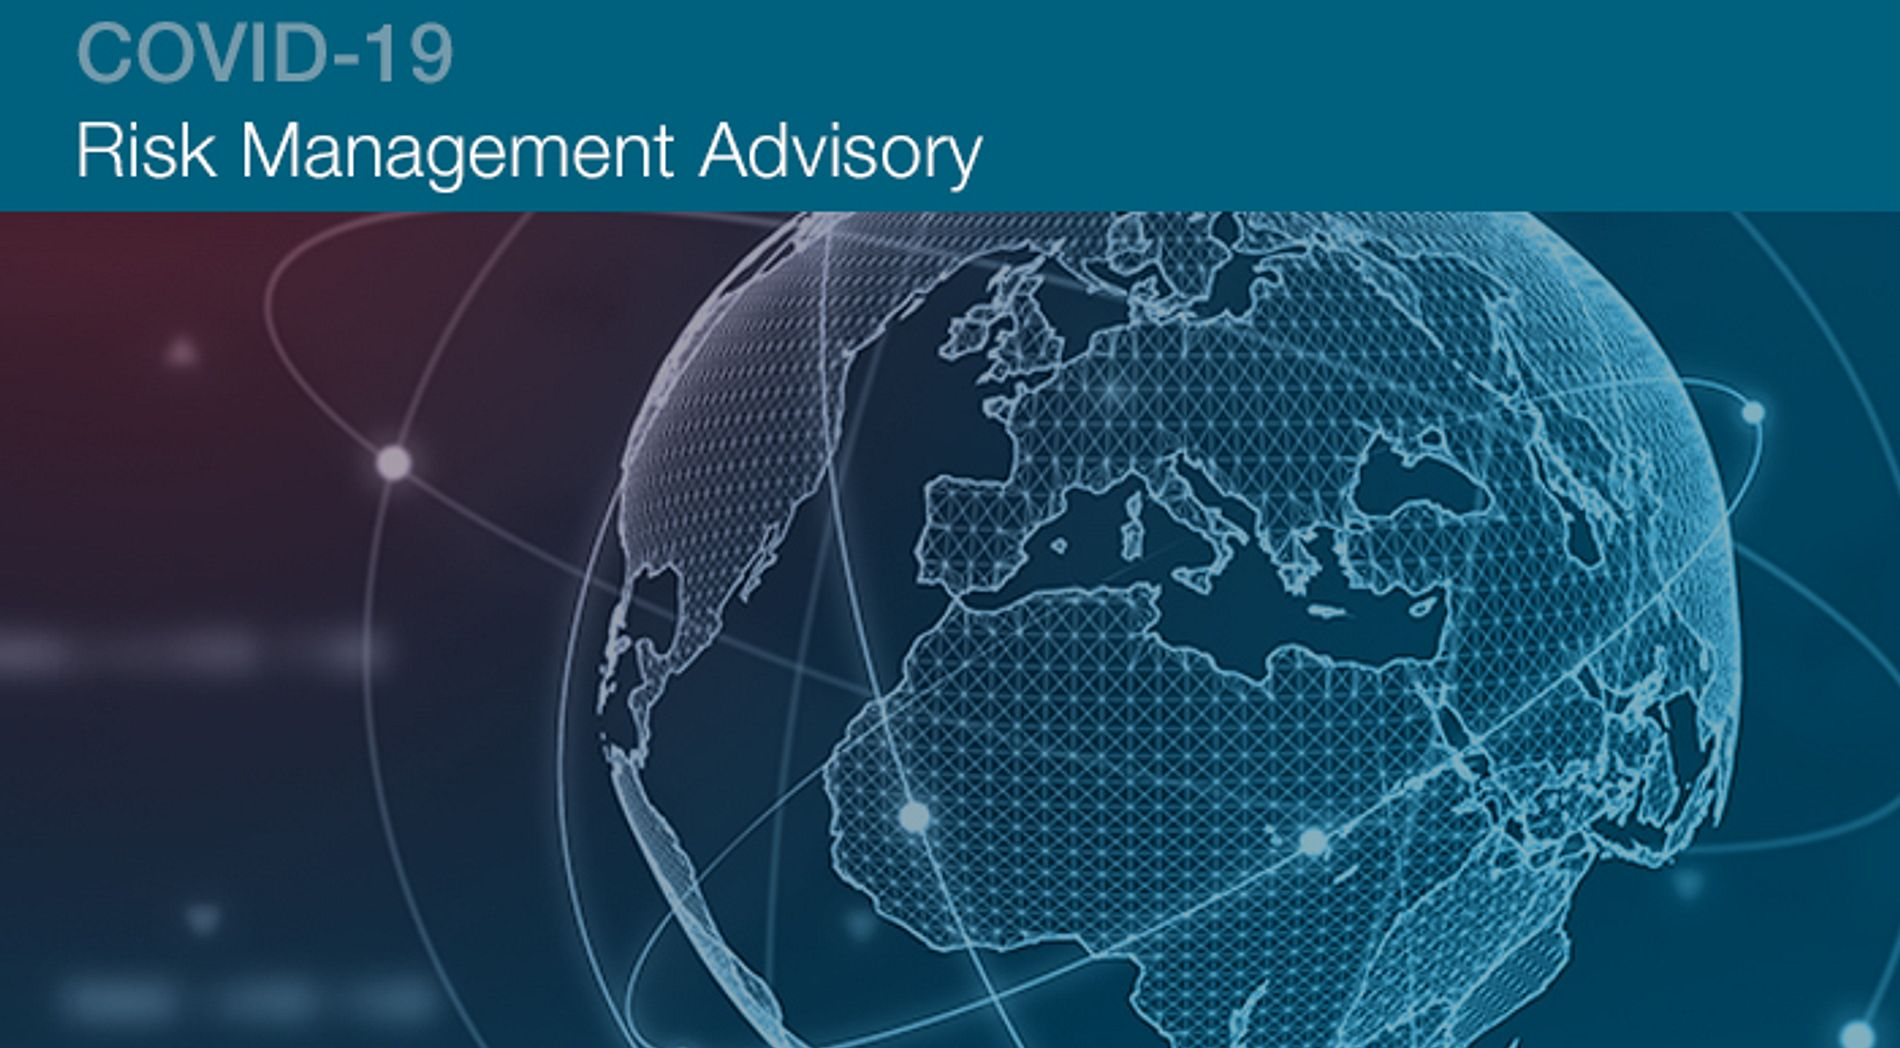 Risk management advisory